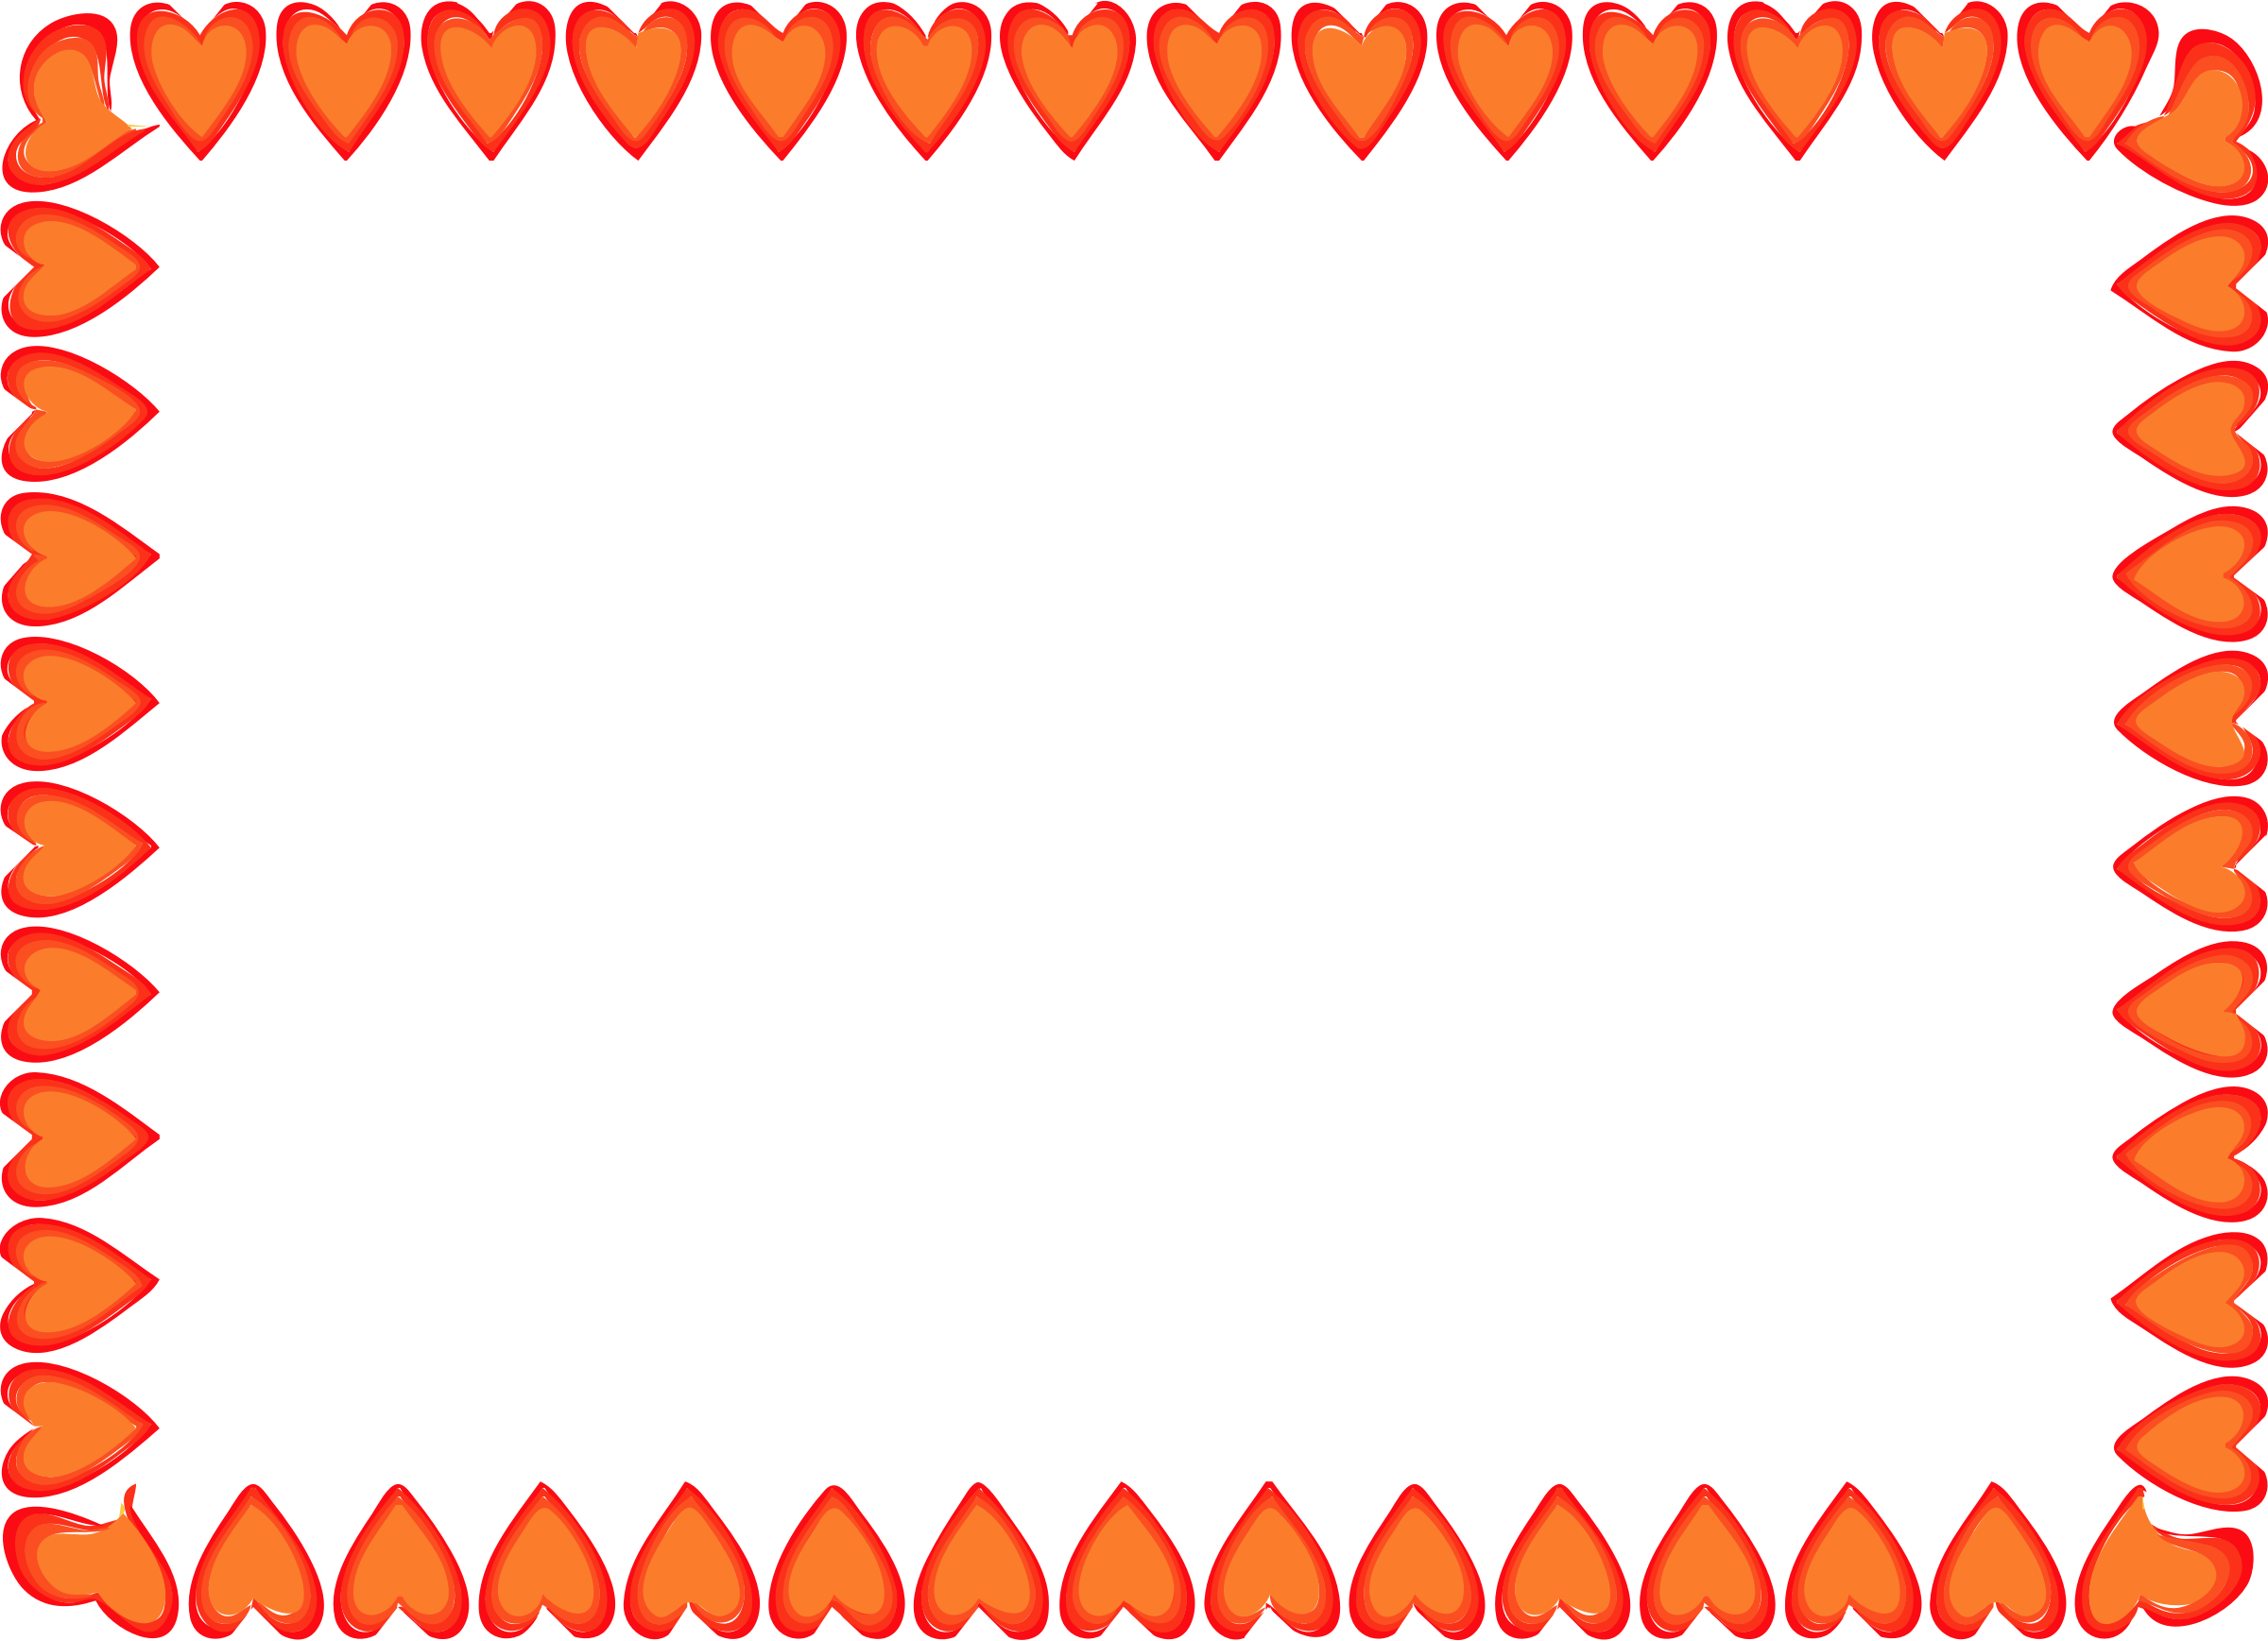 Red Hearts Border By Islandvibz A Simple Rectangular Border Made Of Red Hearts On Openclipart Red Heart Heart Border Border